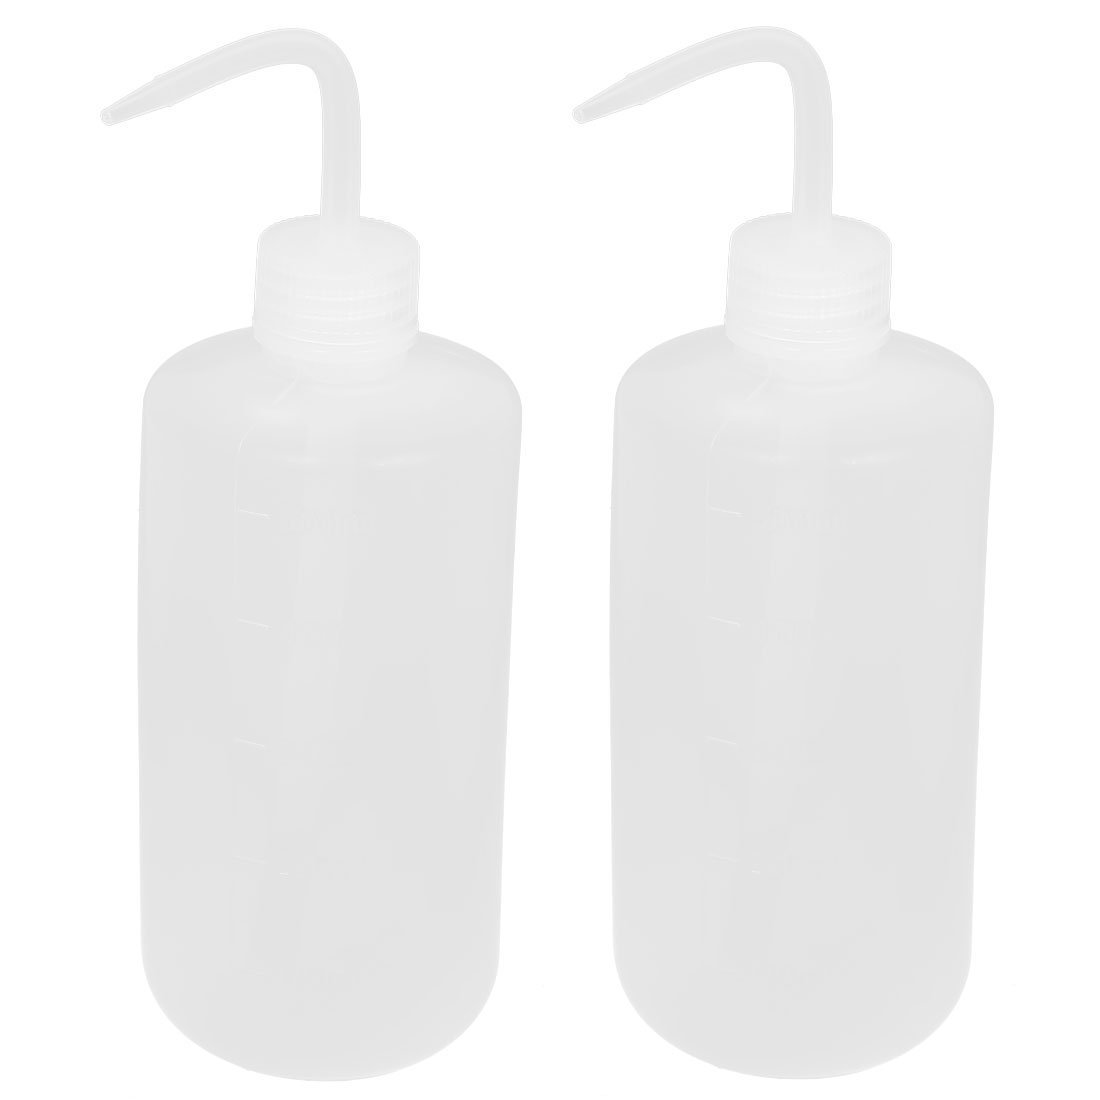 sourcingmap® 500mL Right Angle Bent Tip Plastic Liquid Storage Squeeze Bottle 2pcs a15073000ux0171